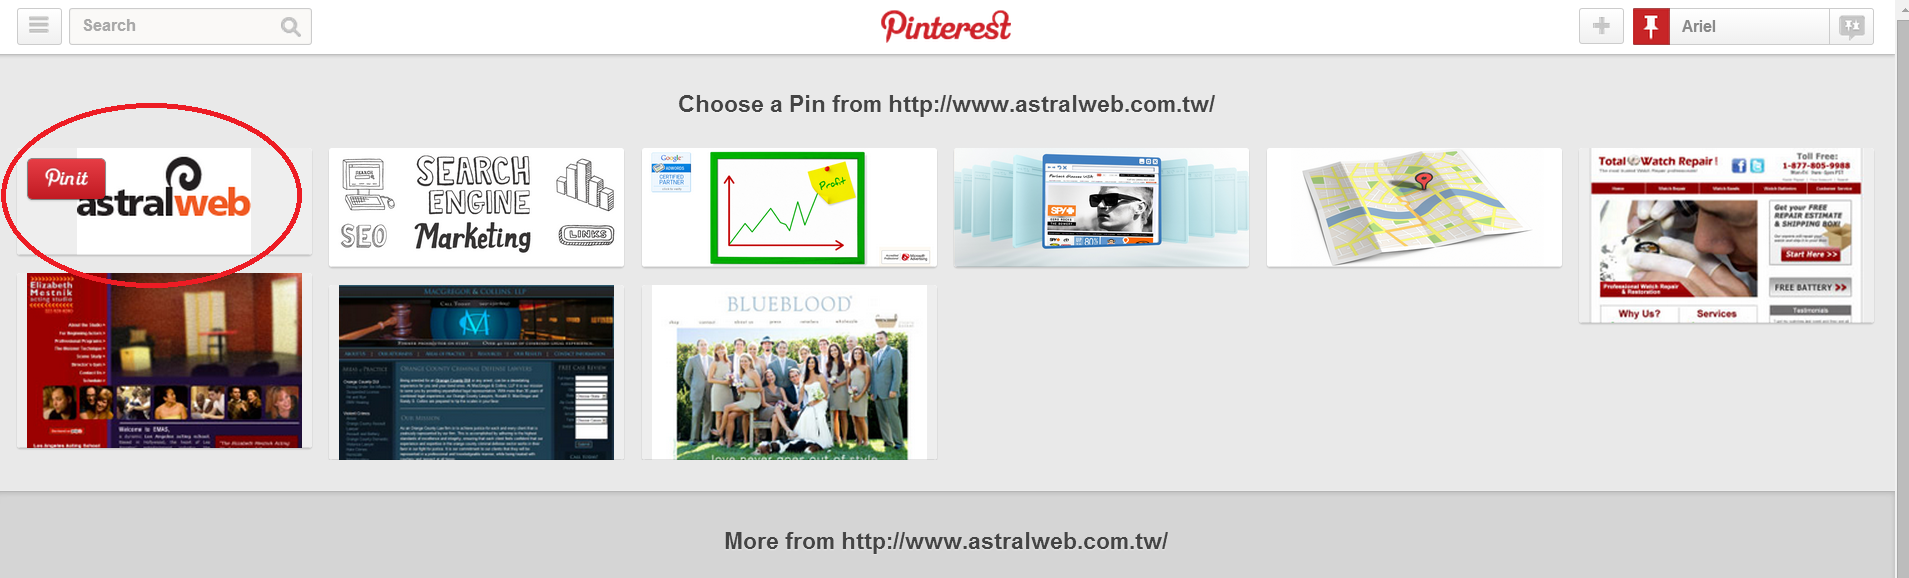 pinterest-introduce-06